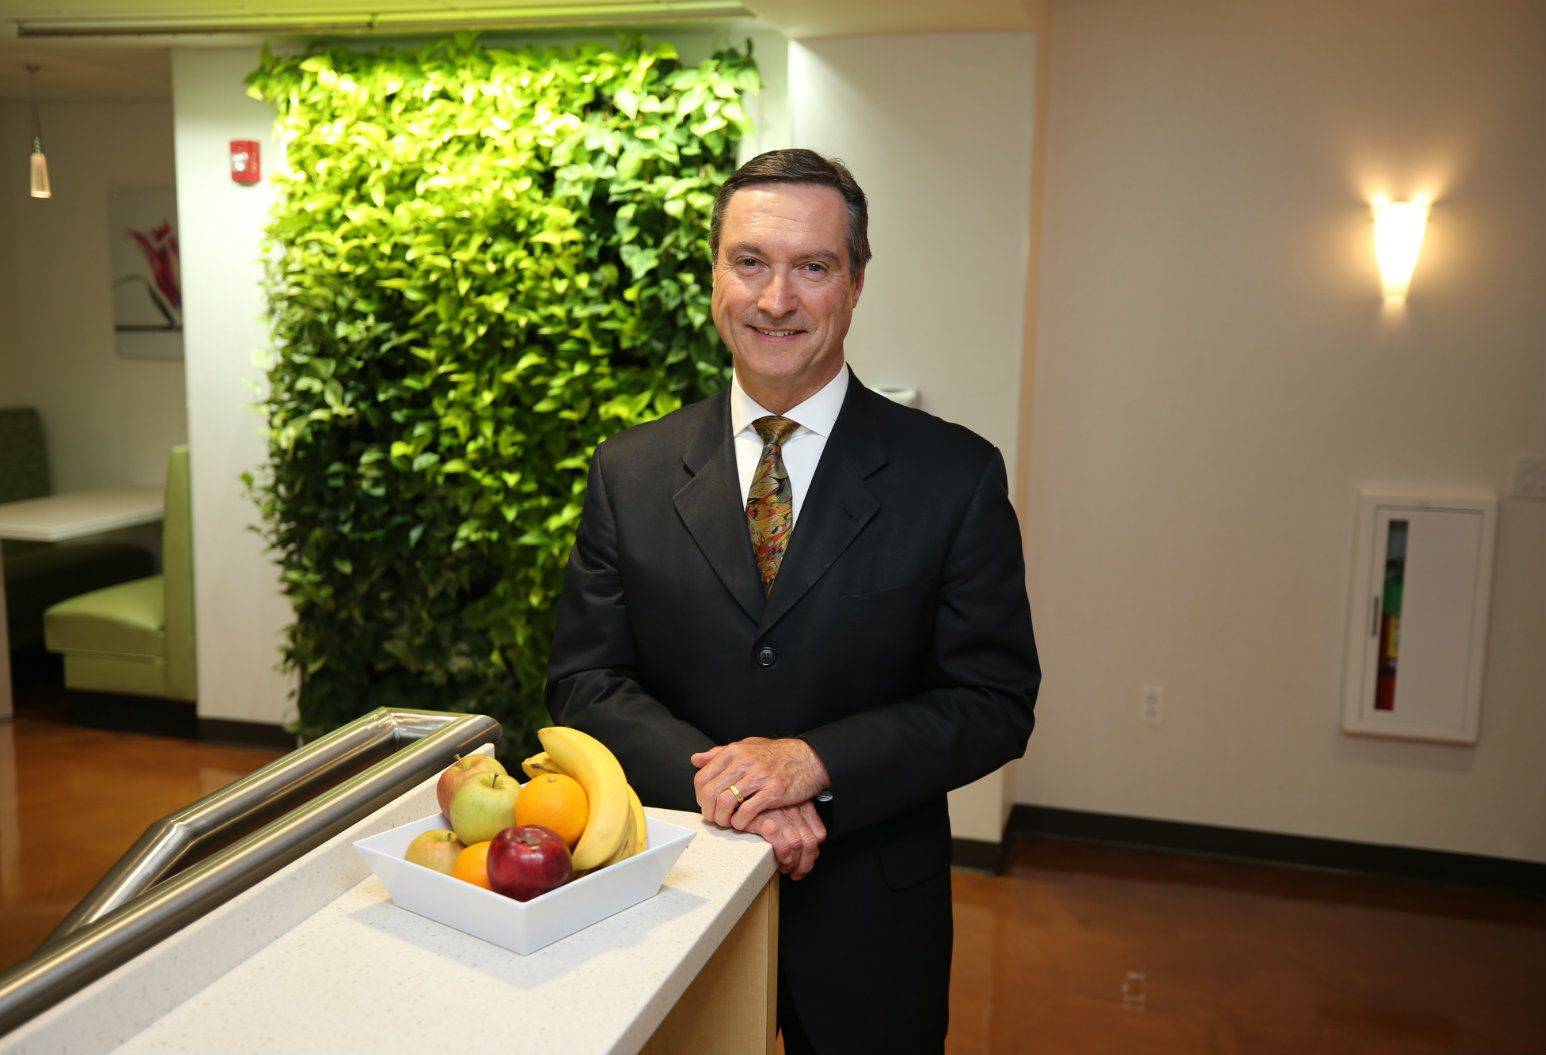 Bruno Tison, smiling and wearing a black suit with a colorful tie, leans against a counter in a hospital cafeteria. On the counter sits a square bowl of fruit containing bananas, apples, and oranges. Behind him, there is a seating booth and a decorative wall of vegetation against a plain white wall. As the first Michelin Star chef hired by a U.S. healthcare organization, Bruno Tison is shaking up hospital food for Northwell Health.